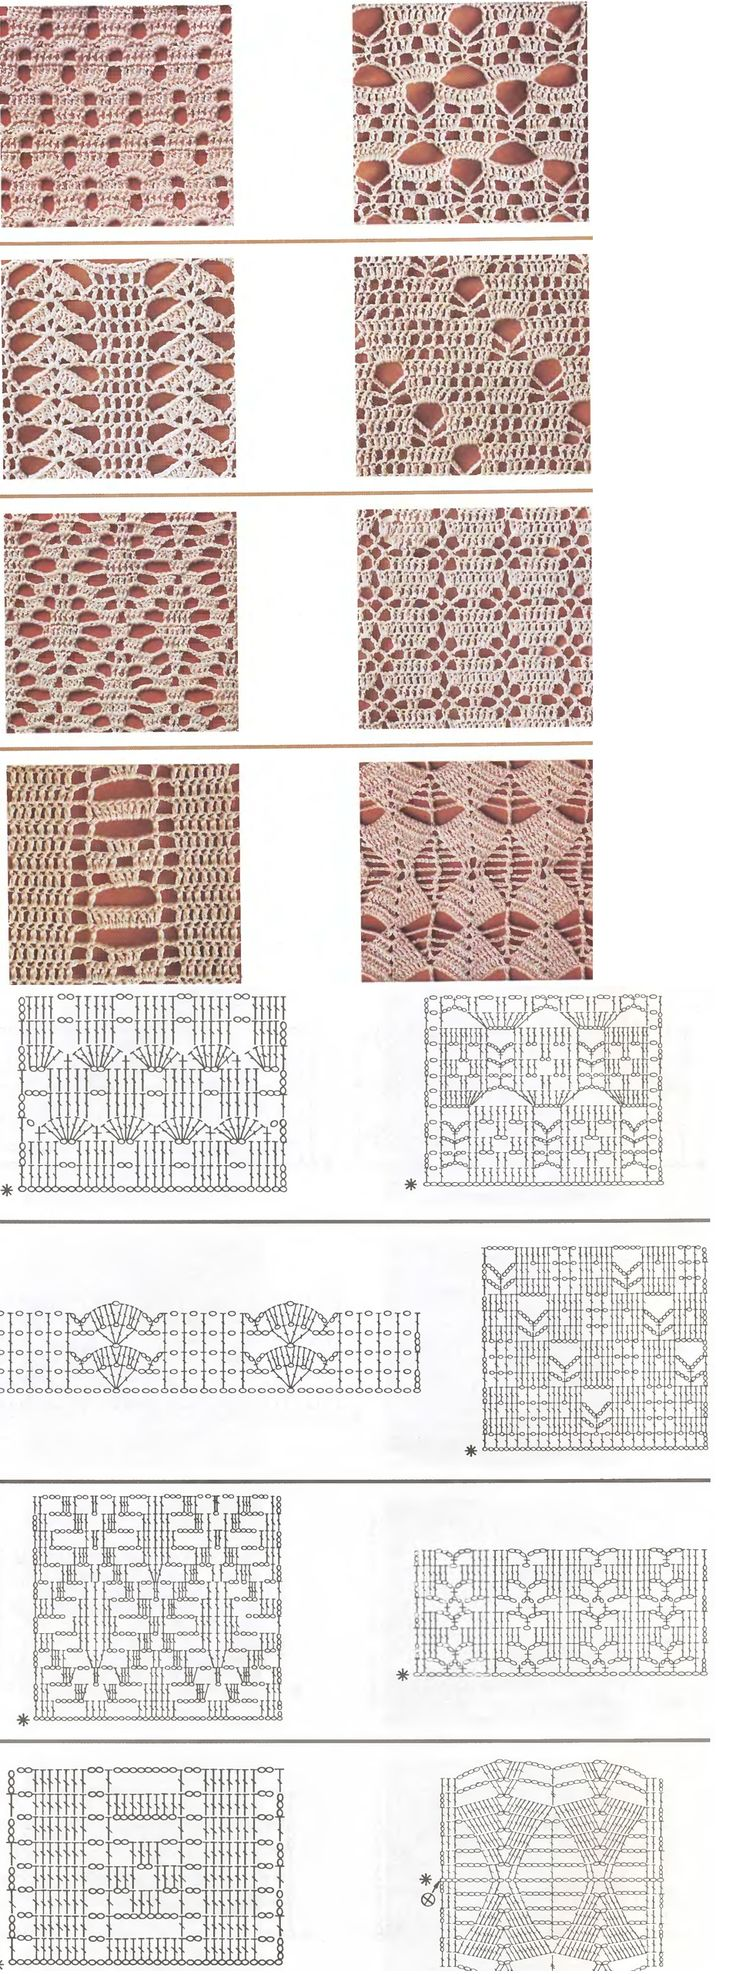 ! Crochet Stitches Patterns, Crochet Diagram, Crochet Graph, Crochet ...